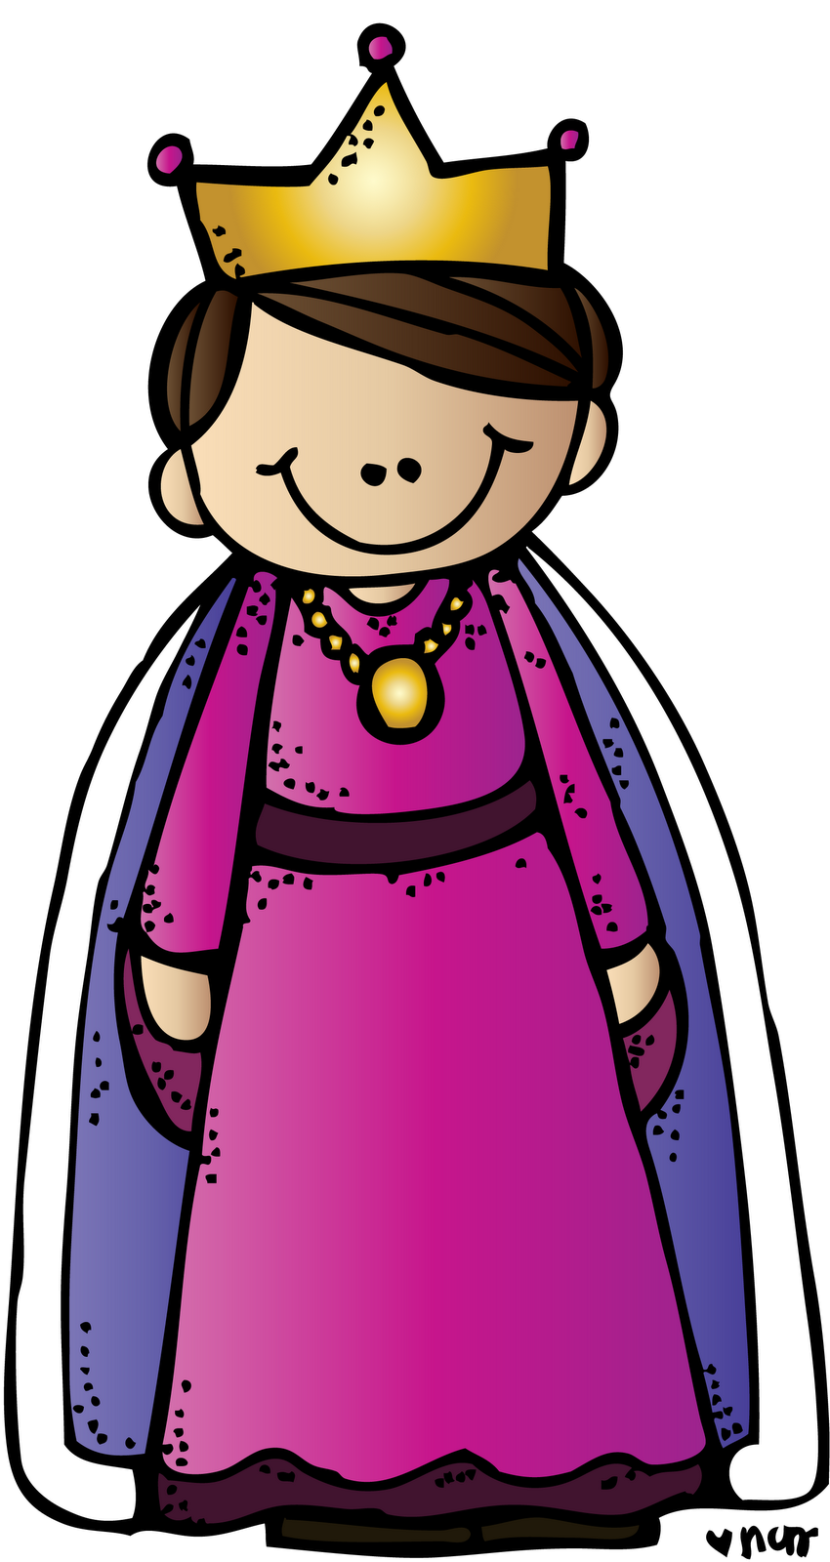 freeuse stock Homecoming clipart. King crown x png